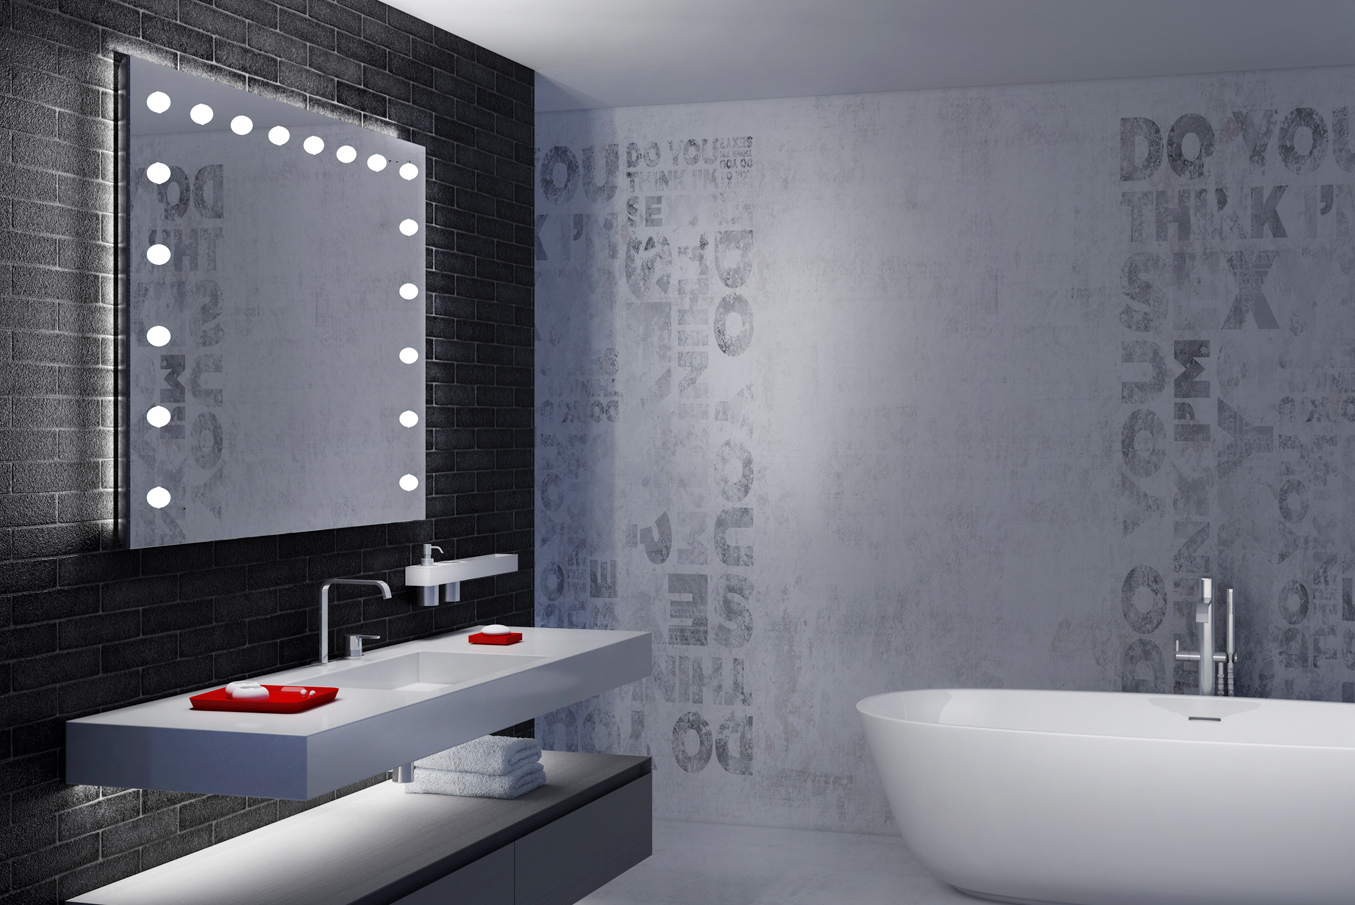 the best bathroom mirror with lights, rectangular, large, frameless with white backlit for minimal interior design